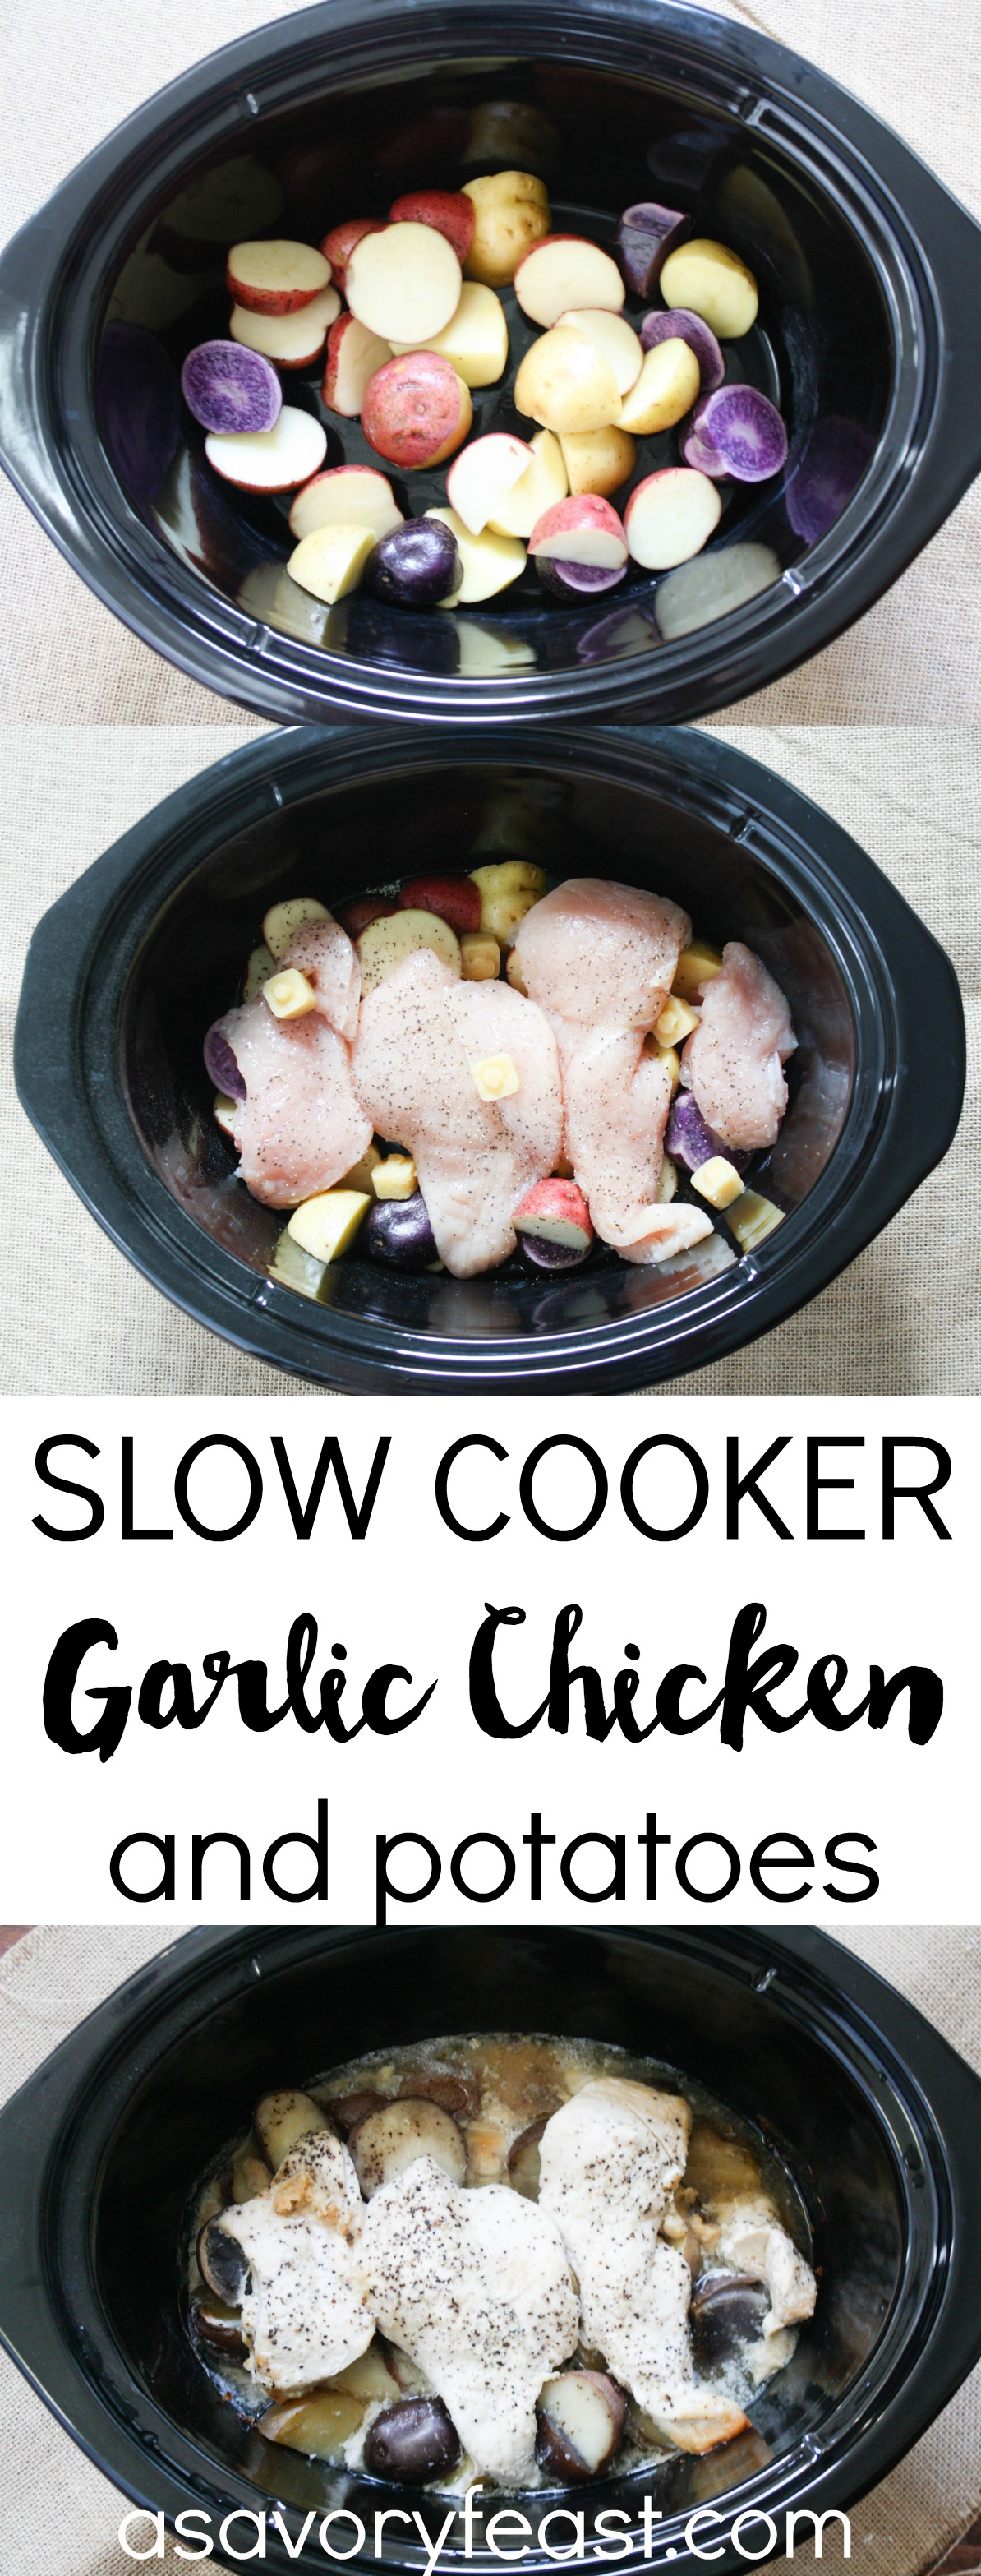 An easy slow cooker dinner to make your life easier! This Garlic Chicken and Potatoes is so simple to make with just a couple of ingredients. Just 5 minutes of prep and you'll have this delicious dinner cooking in the slow cooker!